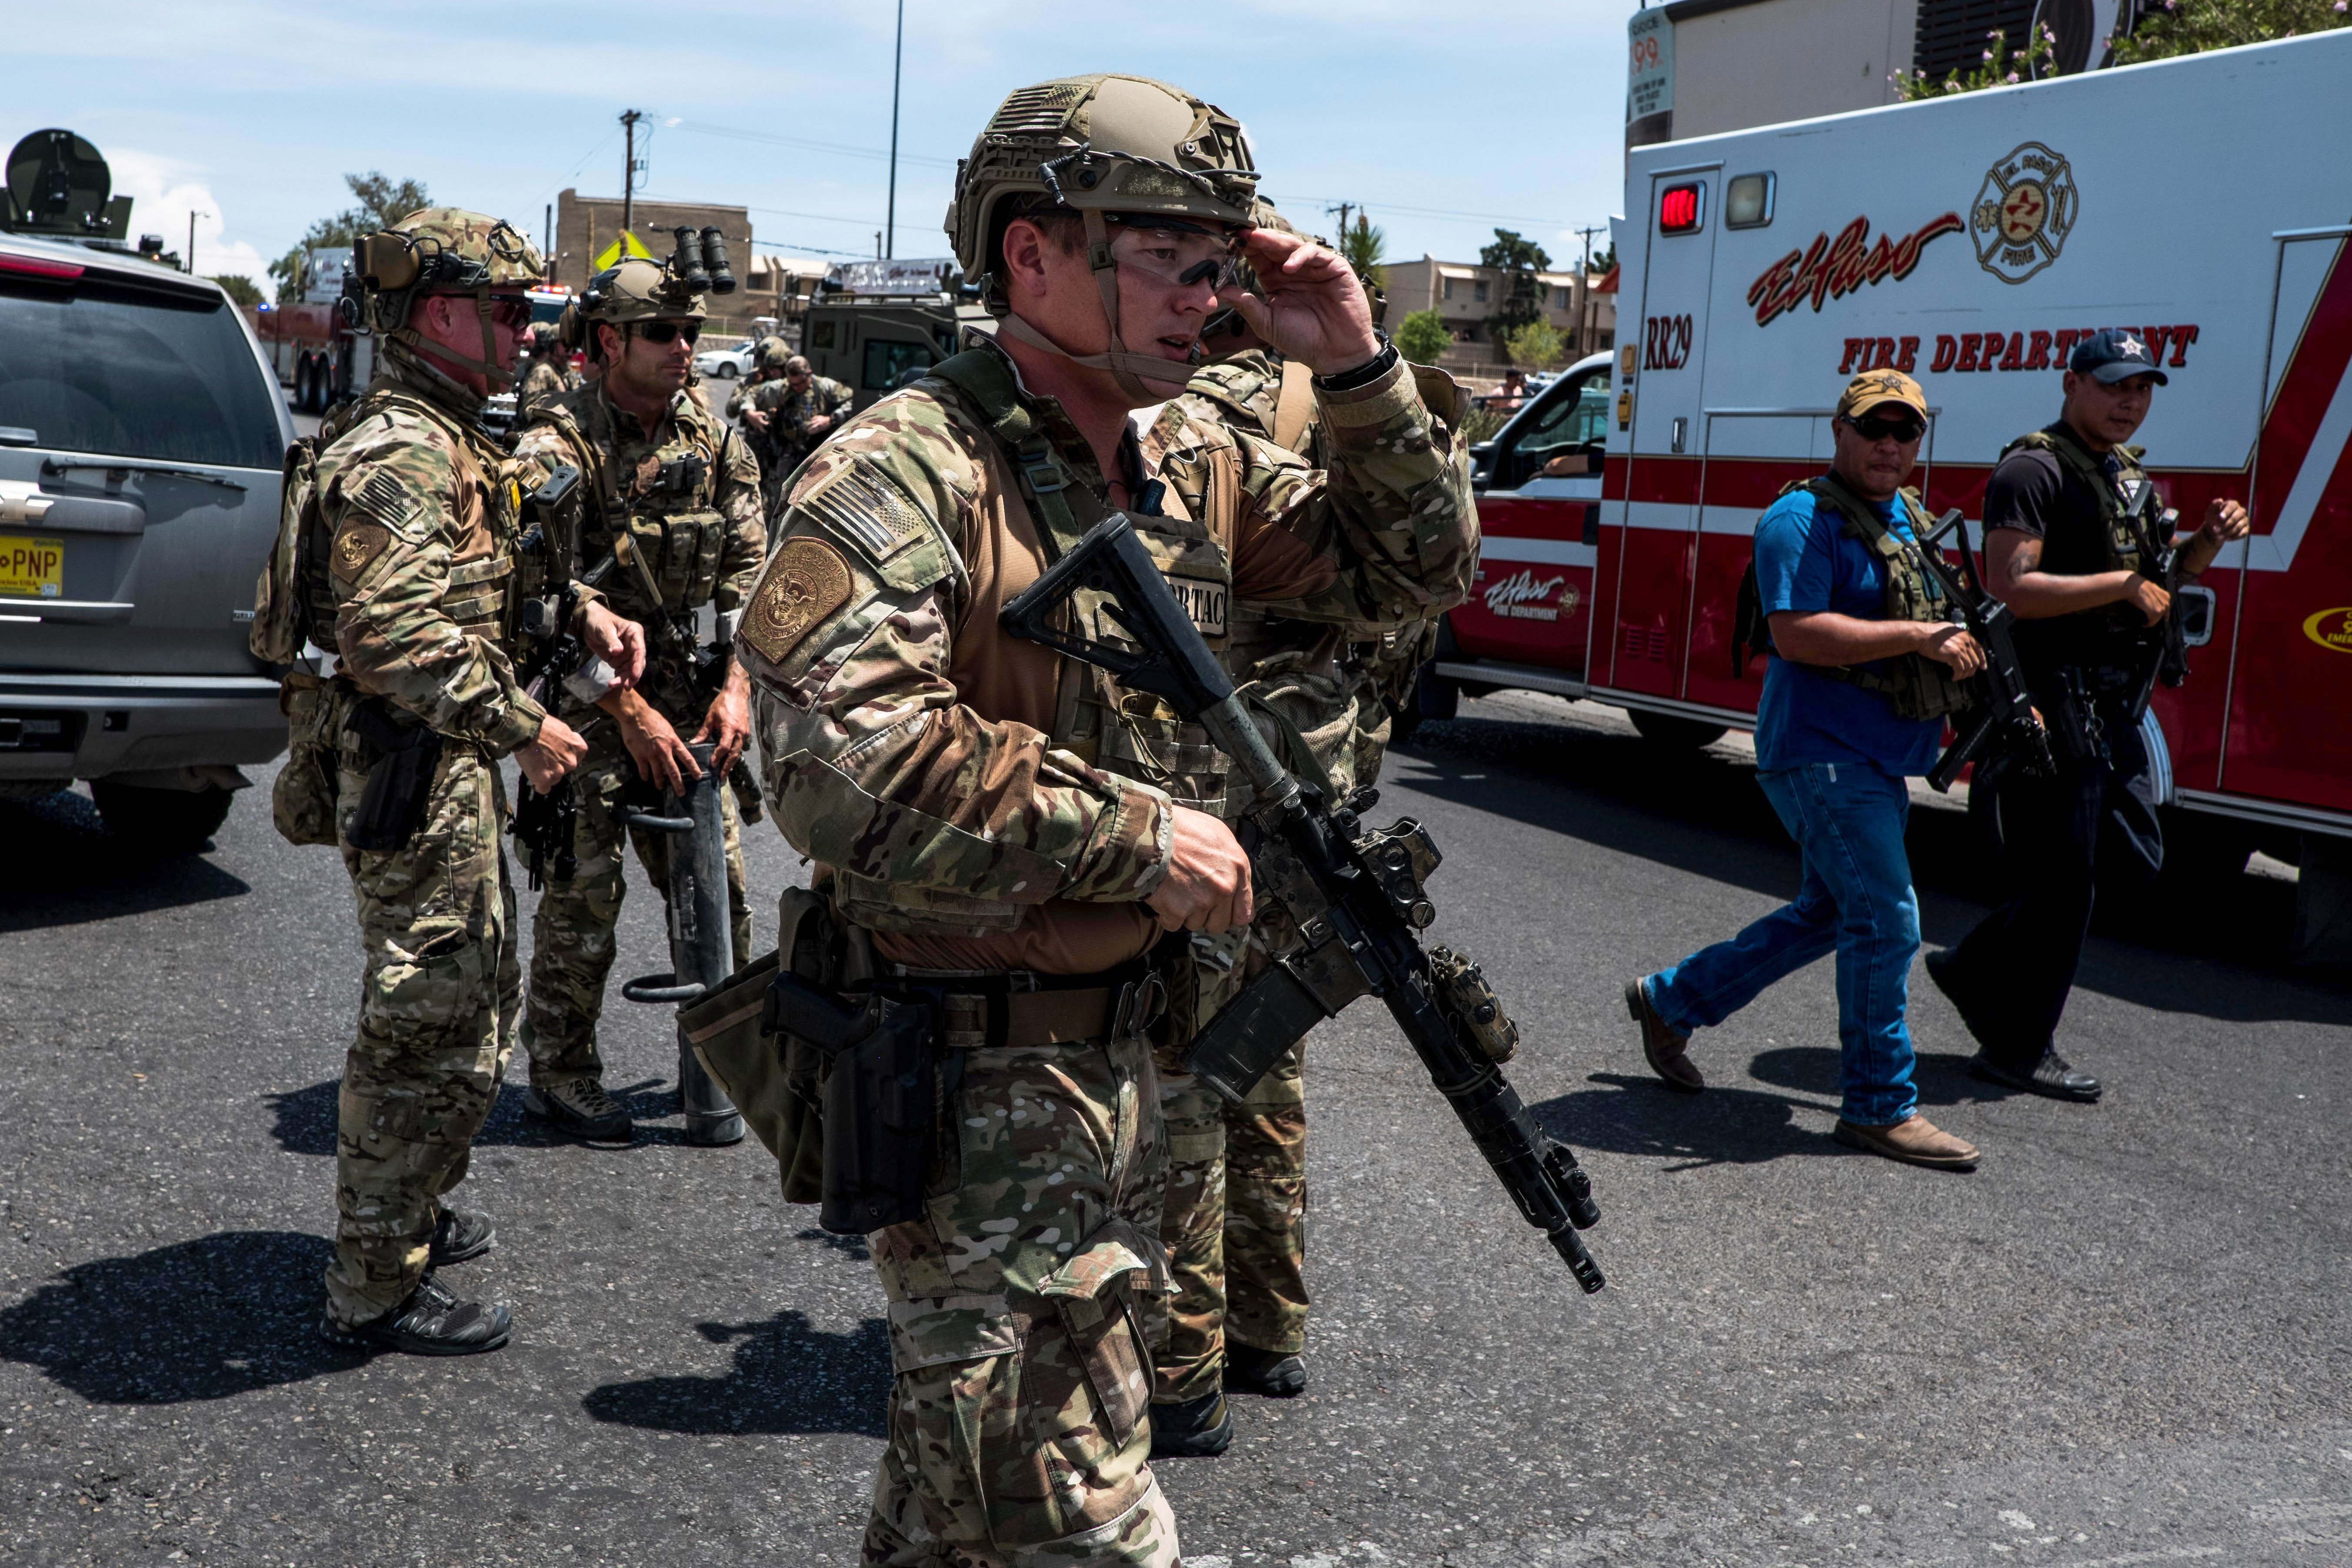 "Law enforcement agencies respond to an active shooter at a Wal-Mart near Cielo Vista Mall in El Paso, Texas, Saturday, Aug. 3, 2019. - Police said there may be more than one suspect involved in an active shooter situation Saturday in El Paso, Texas. City police said on Twitter they had received ""multi reports of multipe shooters."" There was no immediate word on casualties. / JOEL ANGEL JUAREZ/AFP/Getty Images"